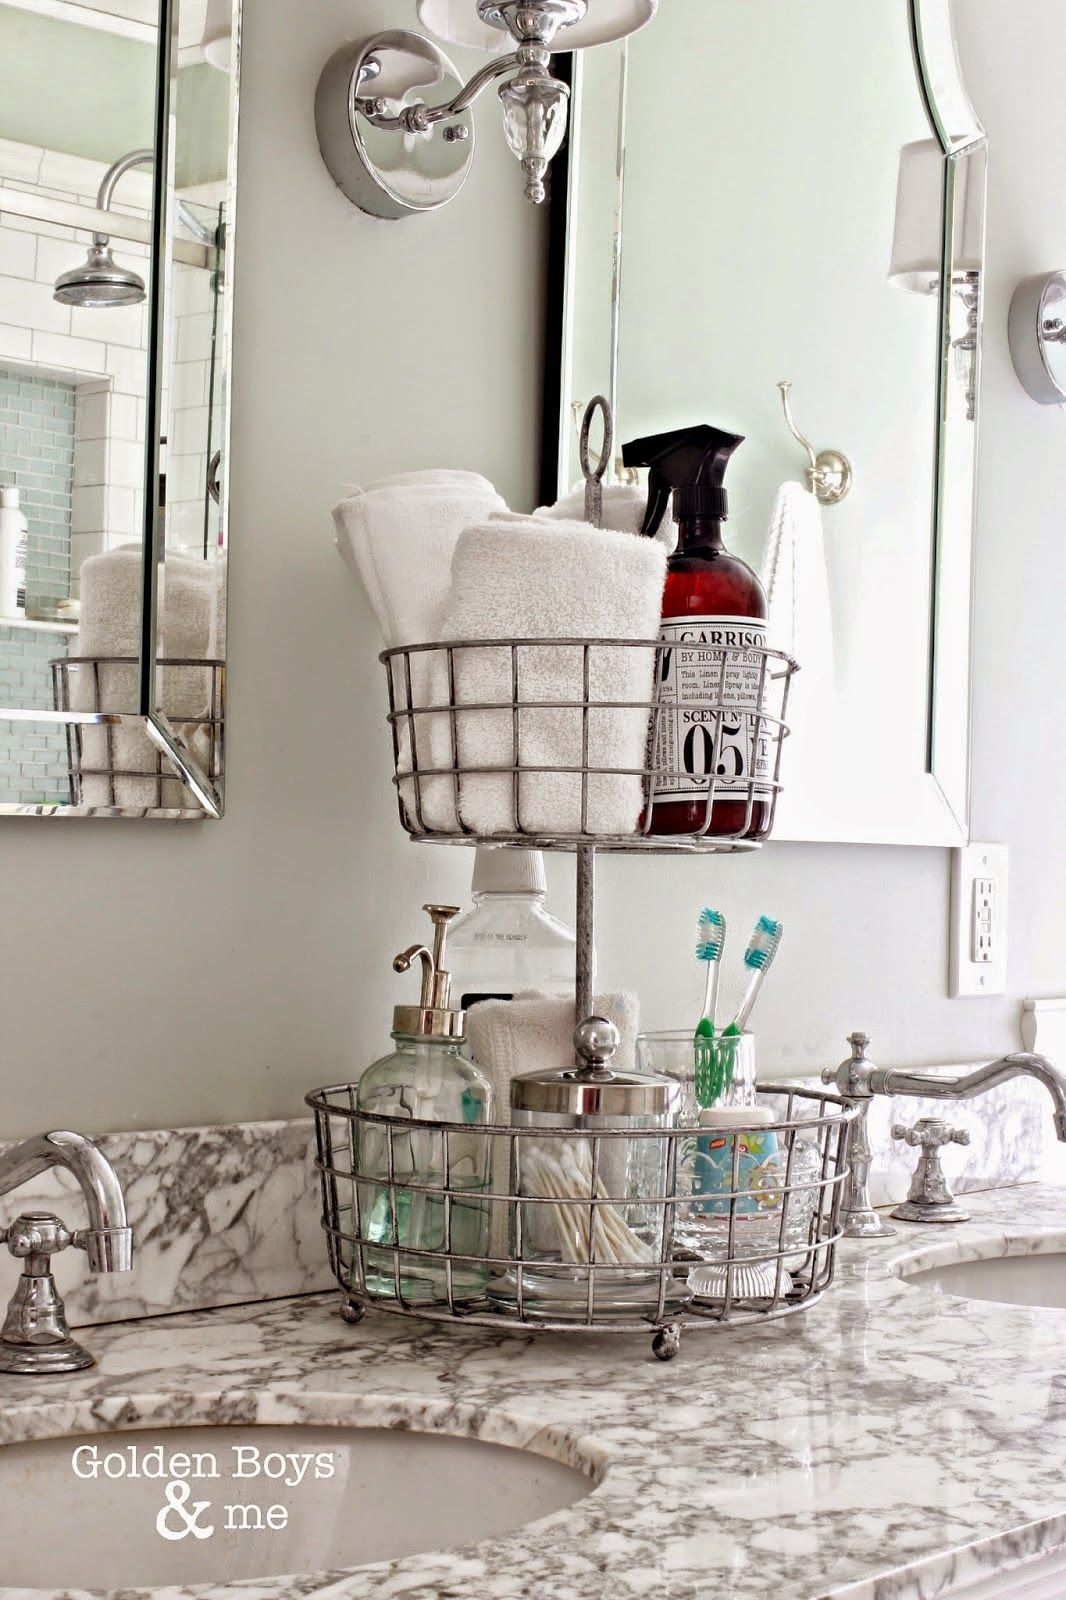 17 Bathroom Storage and Organization Ideas - How to Organize Your Bathroom Counter and Vanity